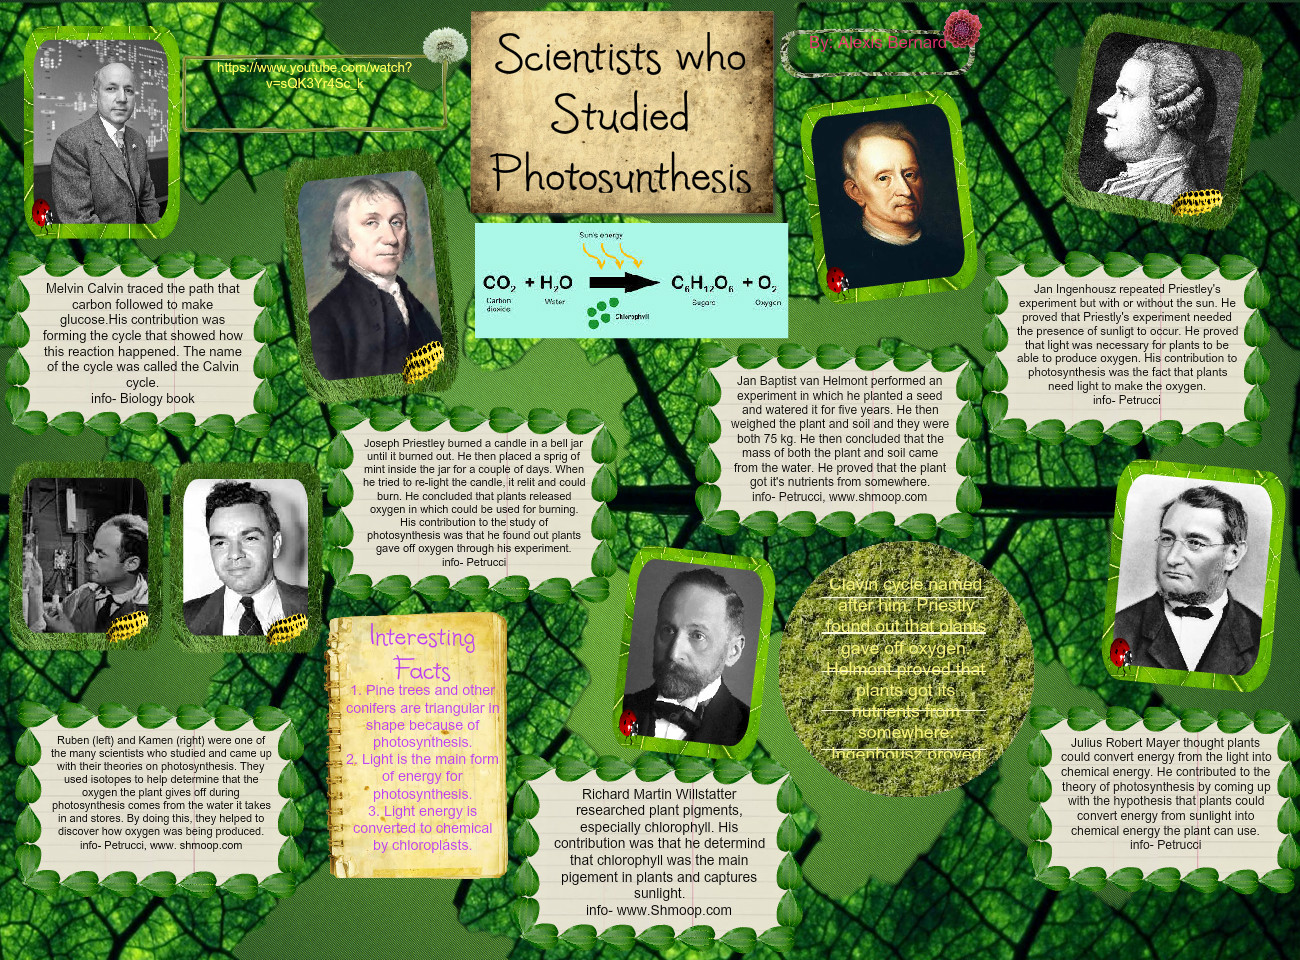 Scientists who Studied Photosynthesis